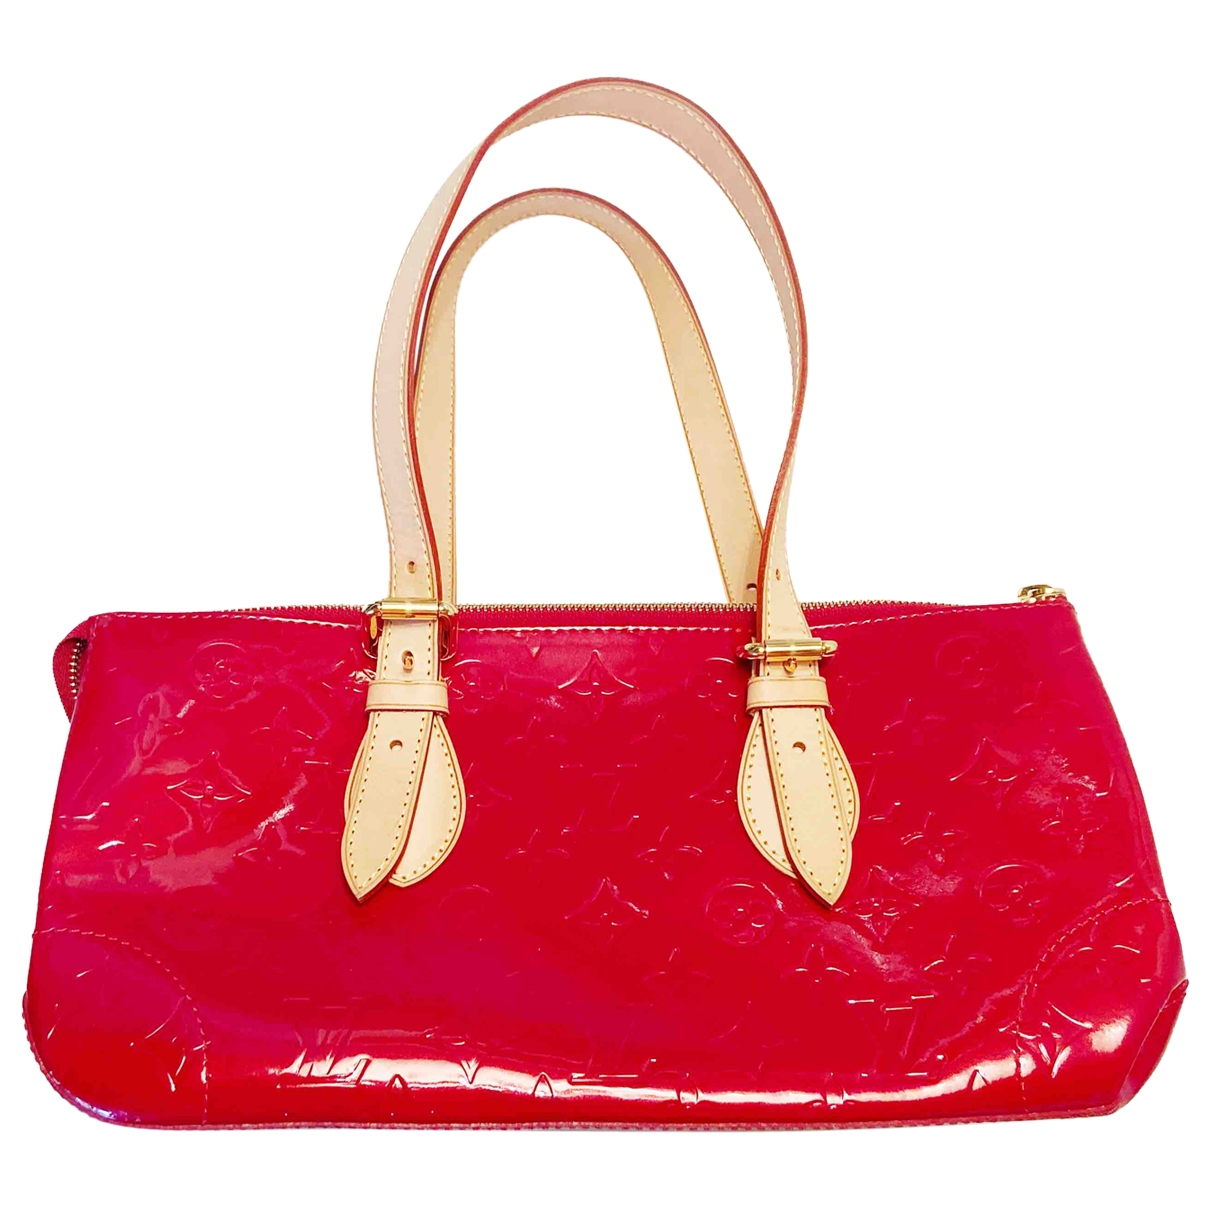 Louis Vuitton Rosewood Red Patent leather handbag for Women \N